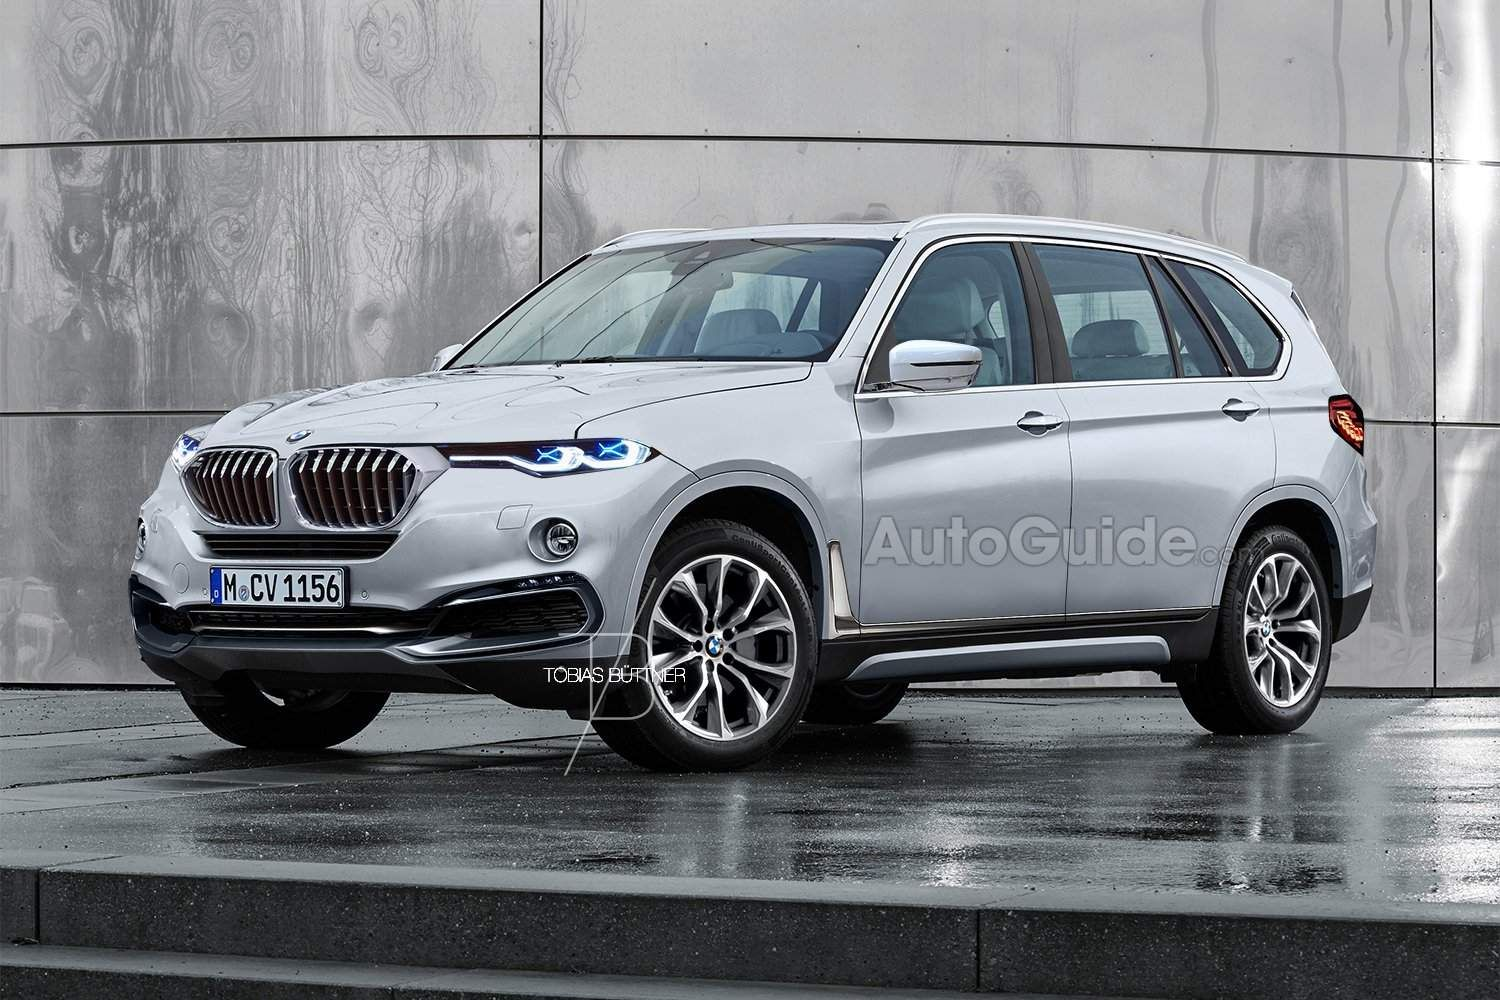 2018 bmw x7 renderings show a sleek design http www bmwblog